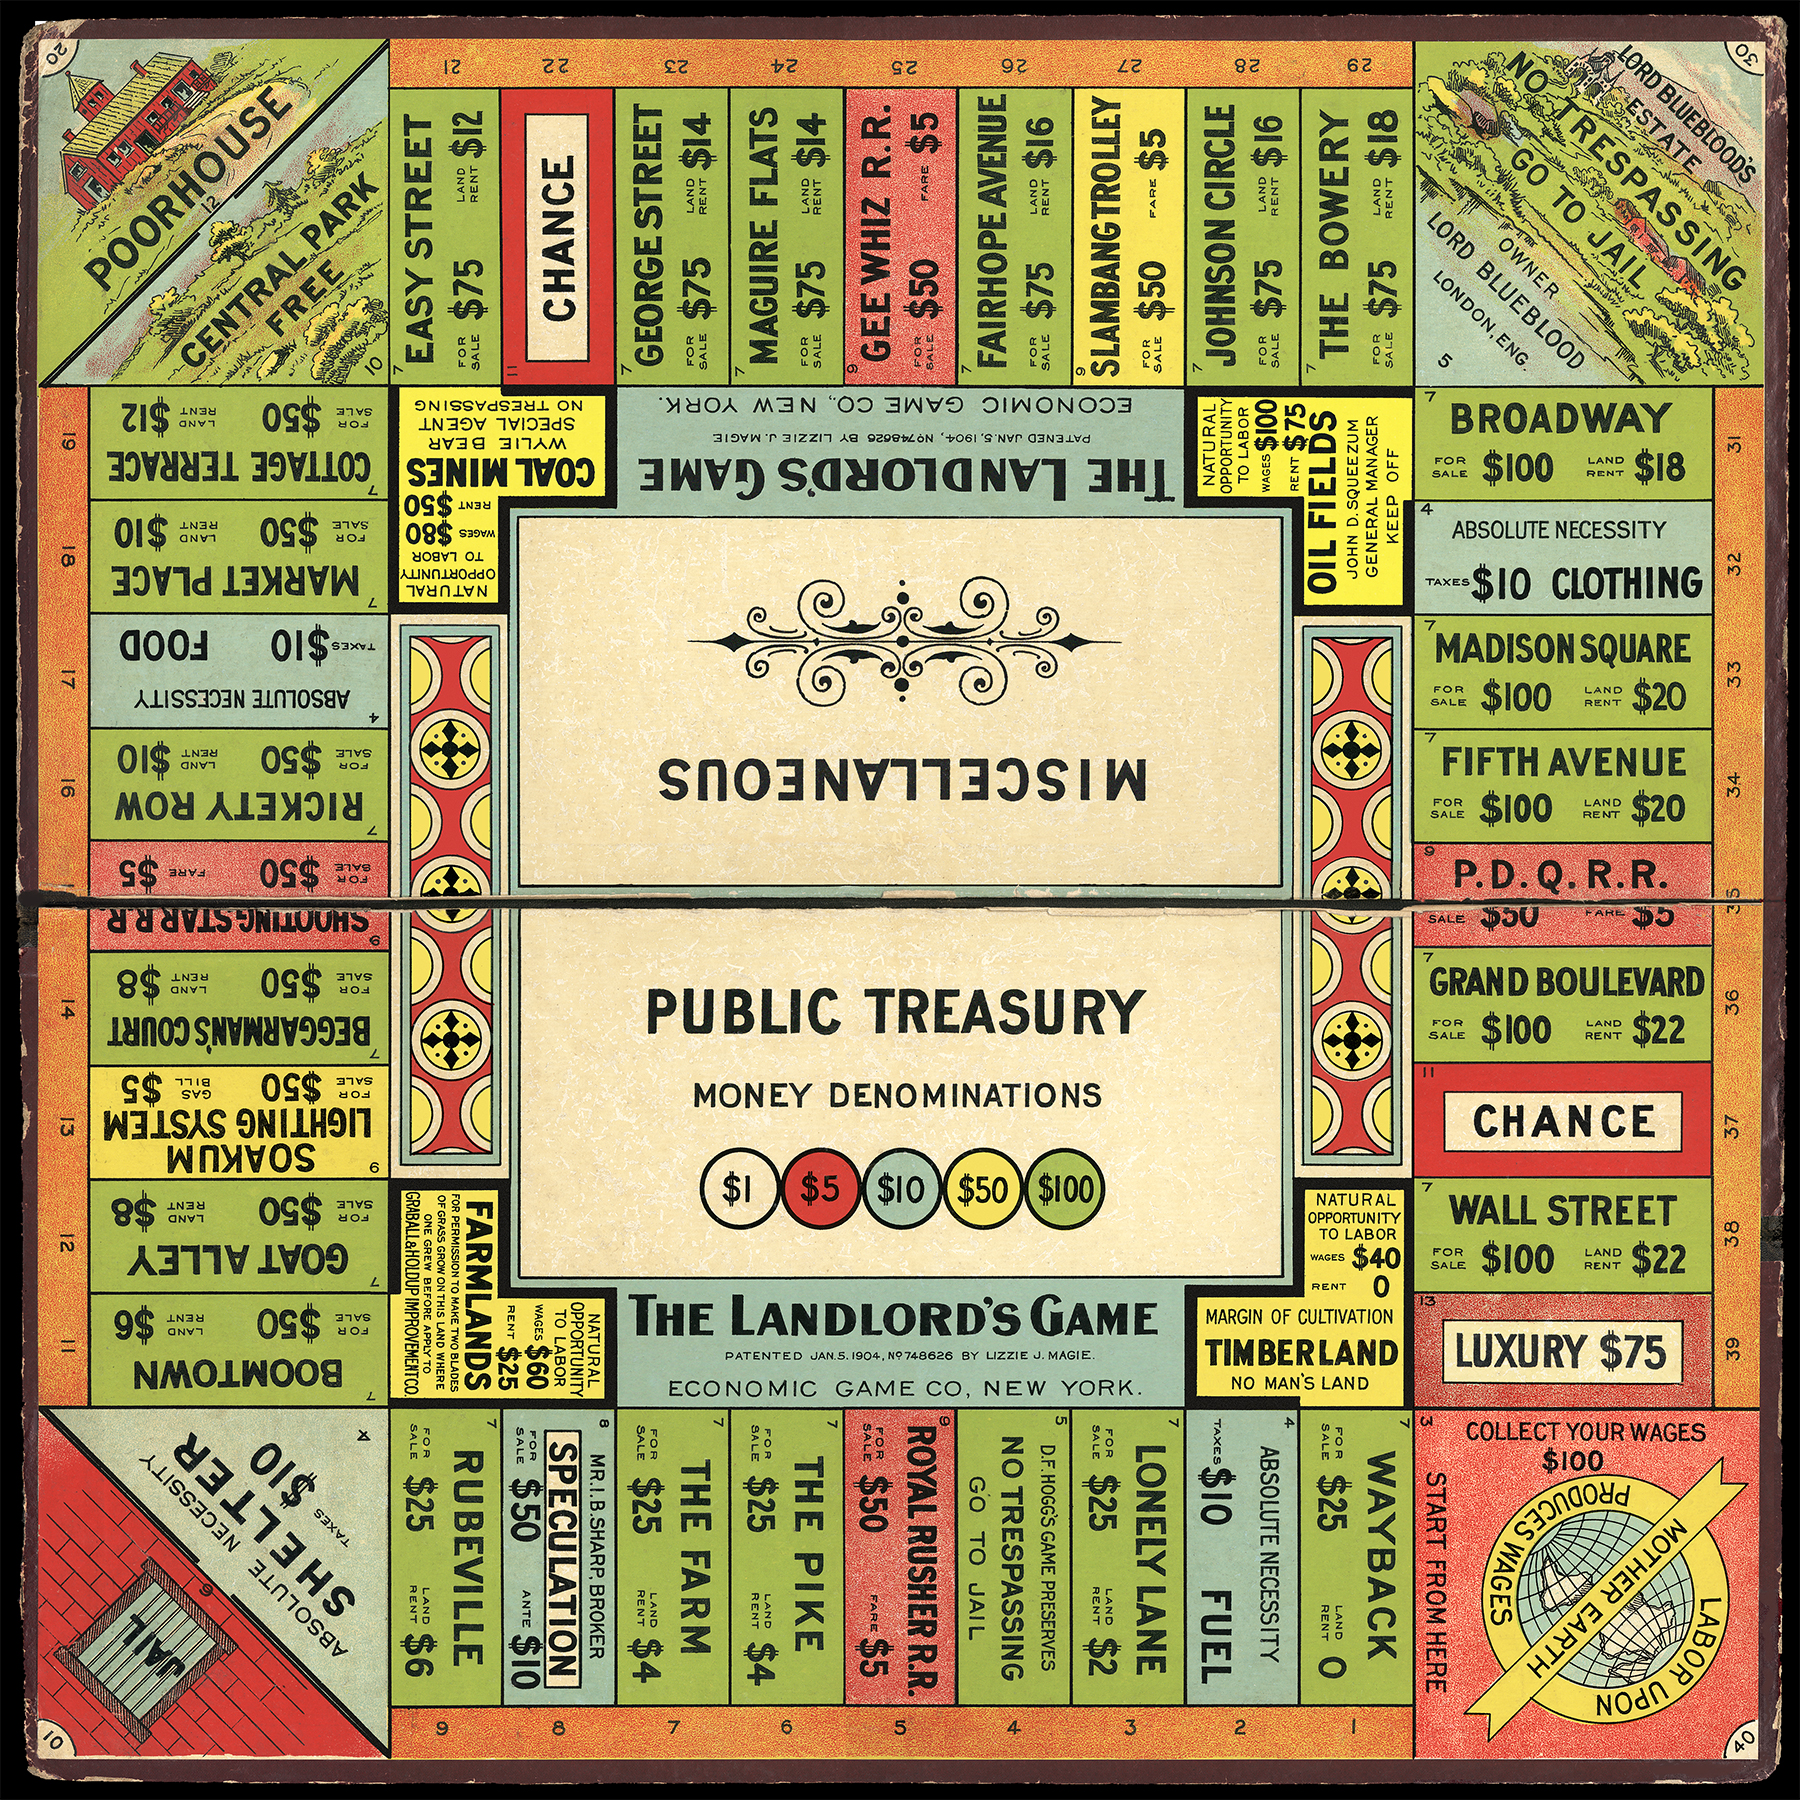 """A colorful square board game labeled """"The Landlord's Game consists of green, blue, pink, and yellow labeled squares wrapping around the edges of the board. Lizzie J. Magie, """"The Landlord's Game board."""" Created in 1906. Image courtesy of Thomas Forsyth, Wikimedia Commons."""